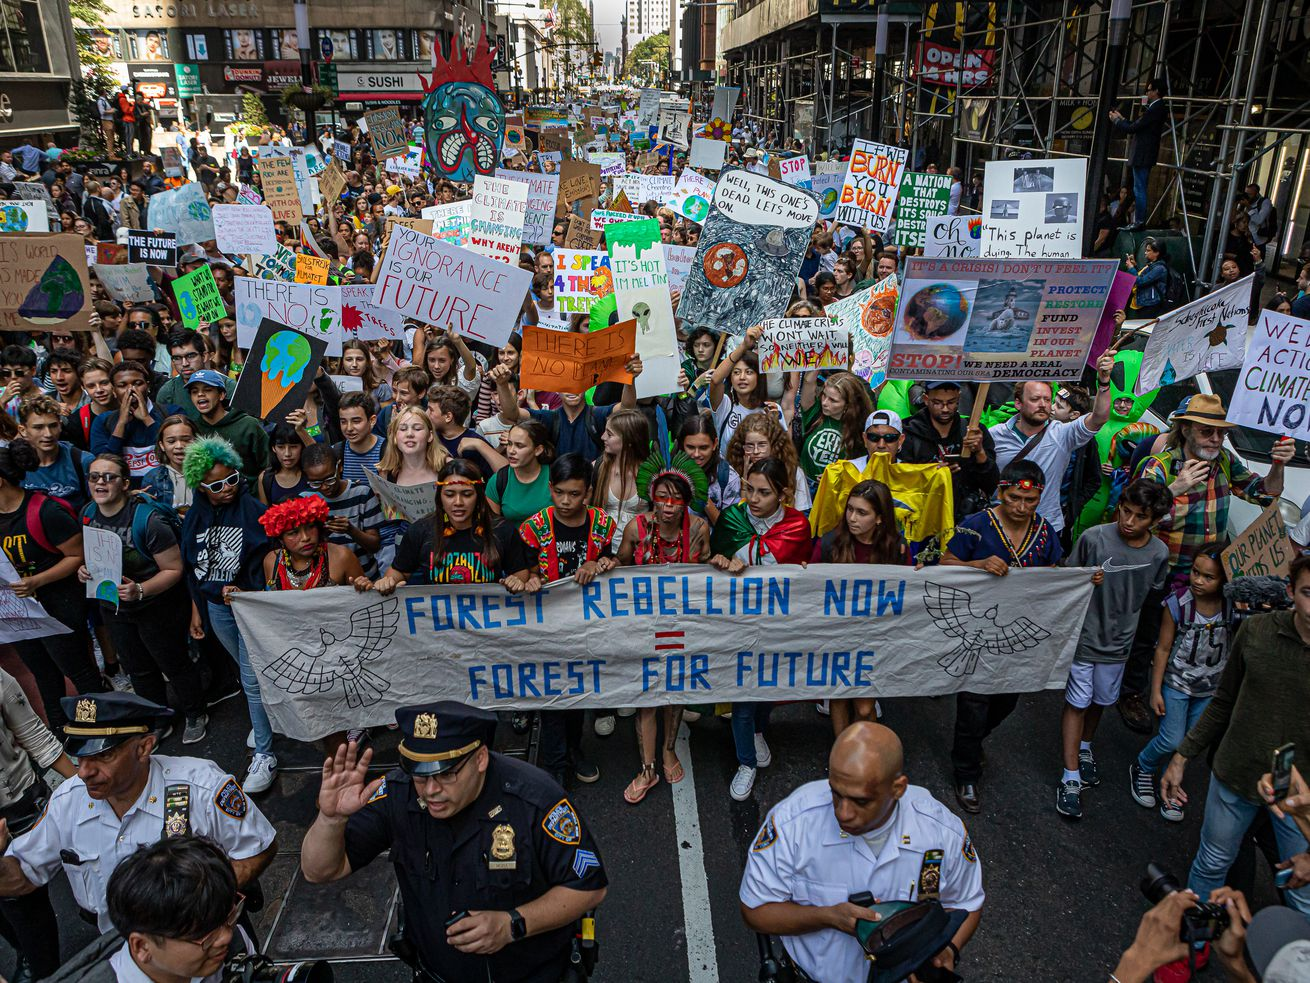 A crowd of protesters fill a New York City street.